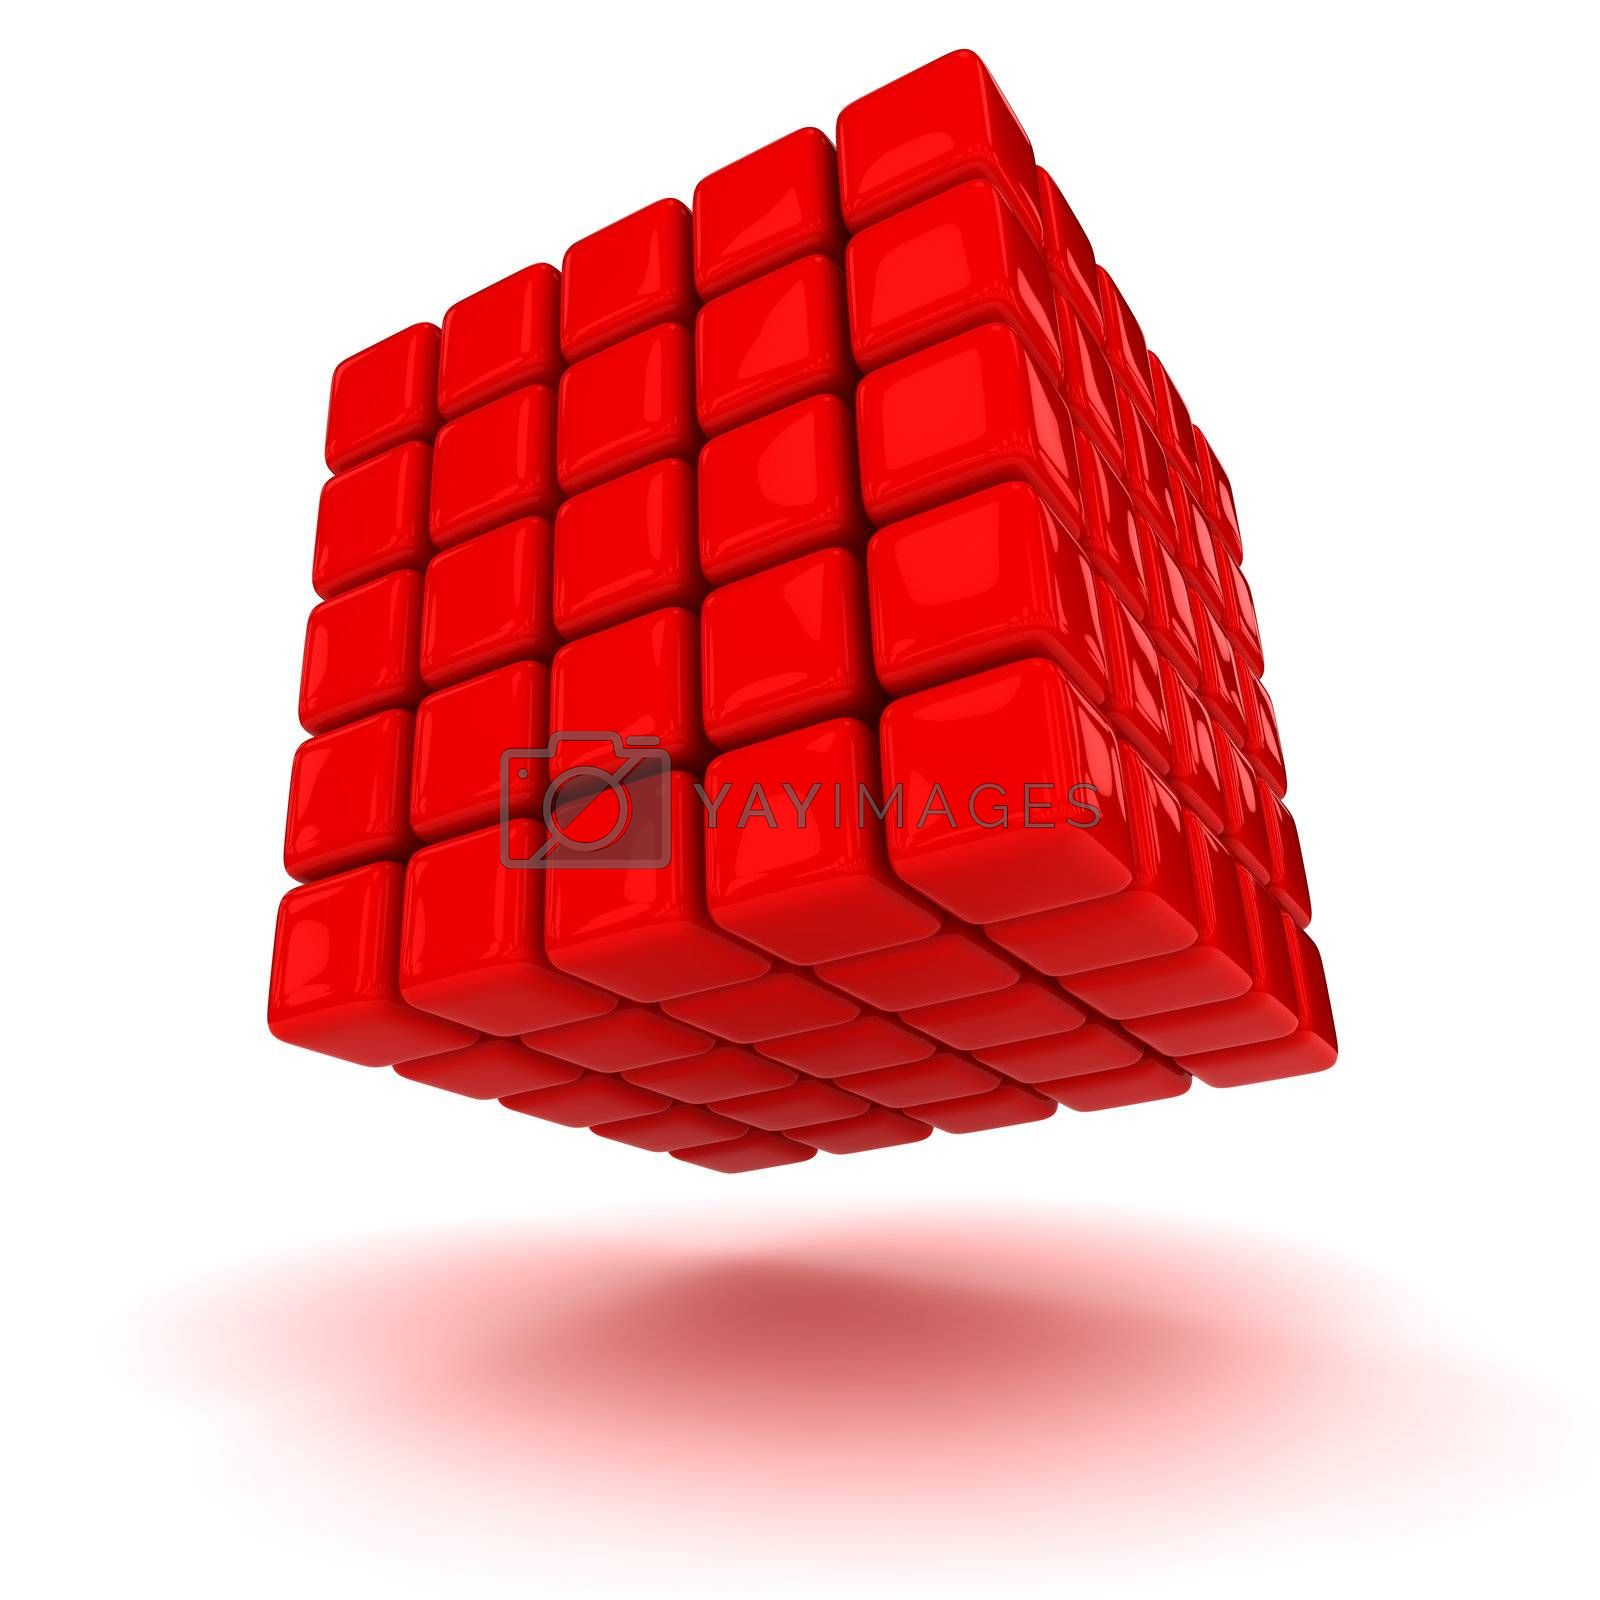 Big red cube made from small blocks